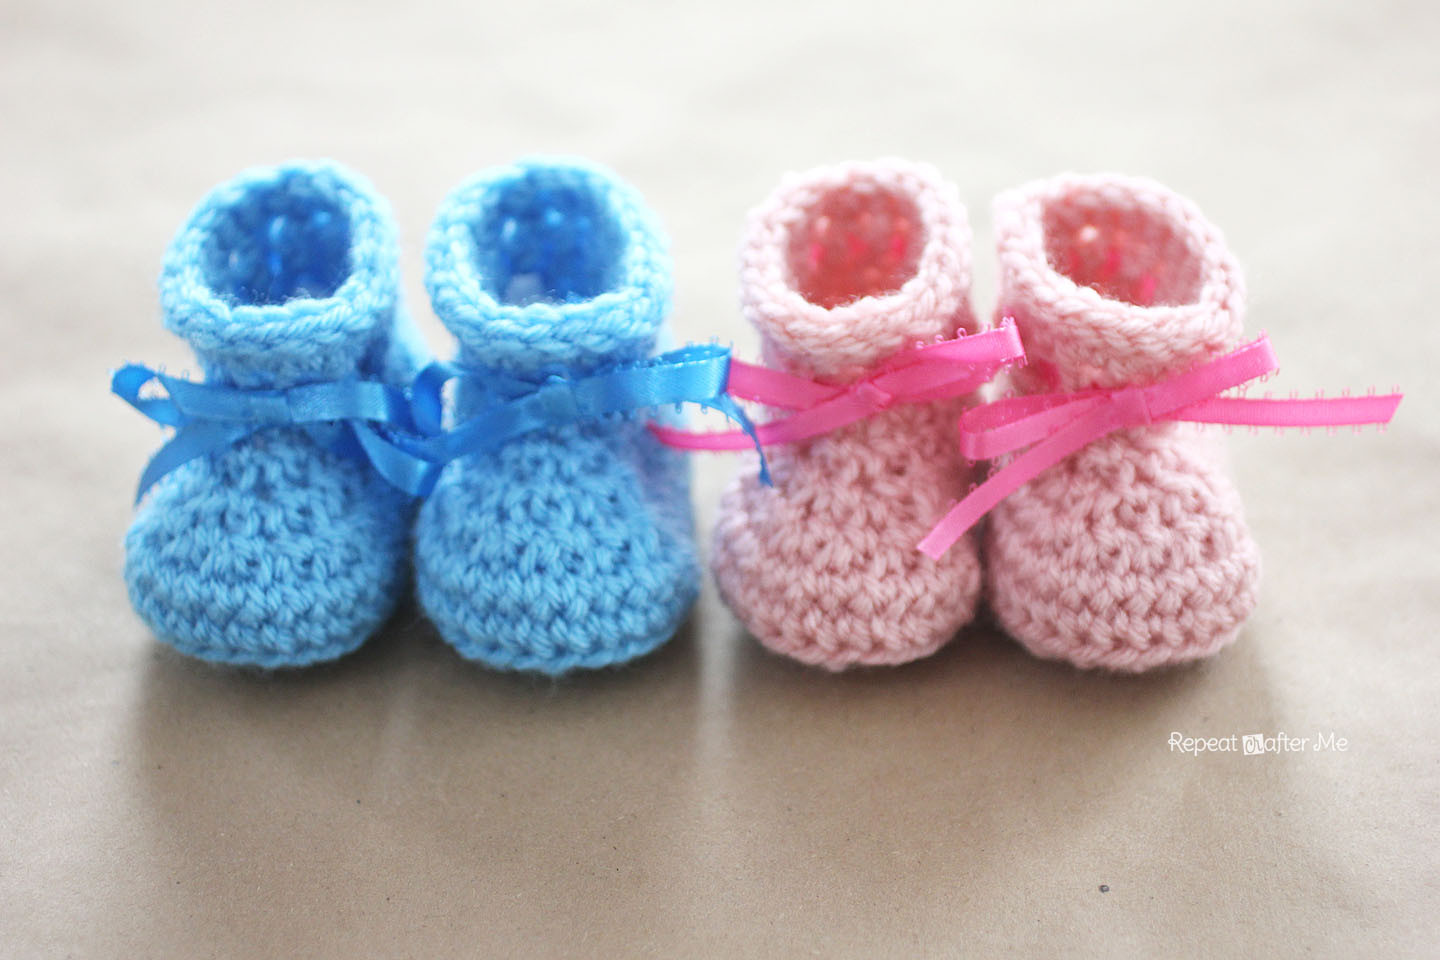 Free Crochet Patterns for Baby Shoes Unique Booties for Baby Of Wonderful 50 Photos Free Crochet Patterns for Baby Shoes